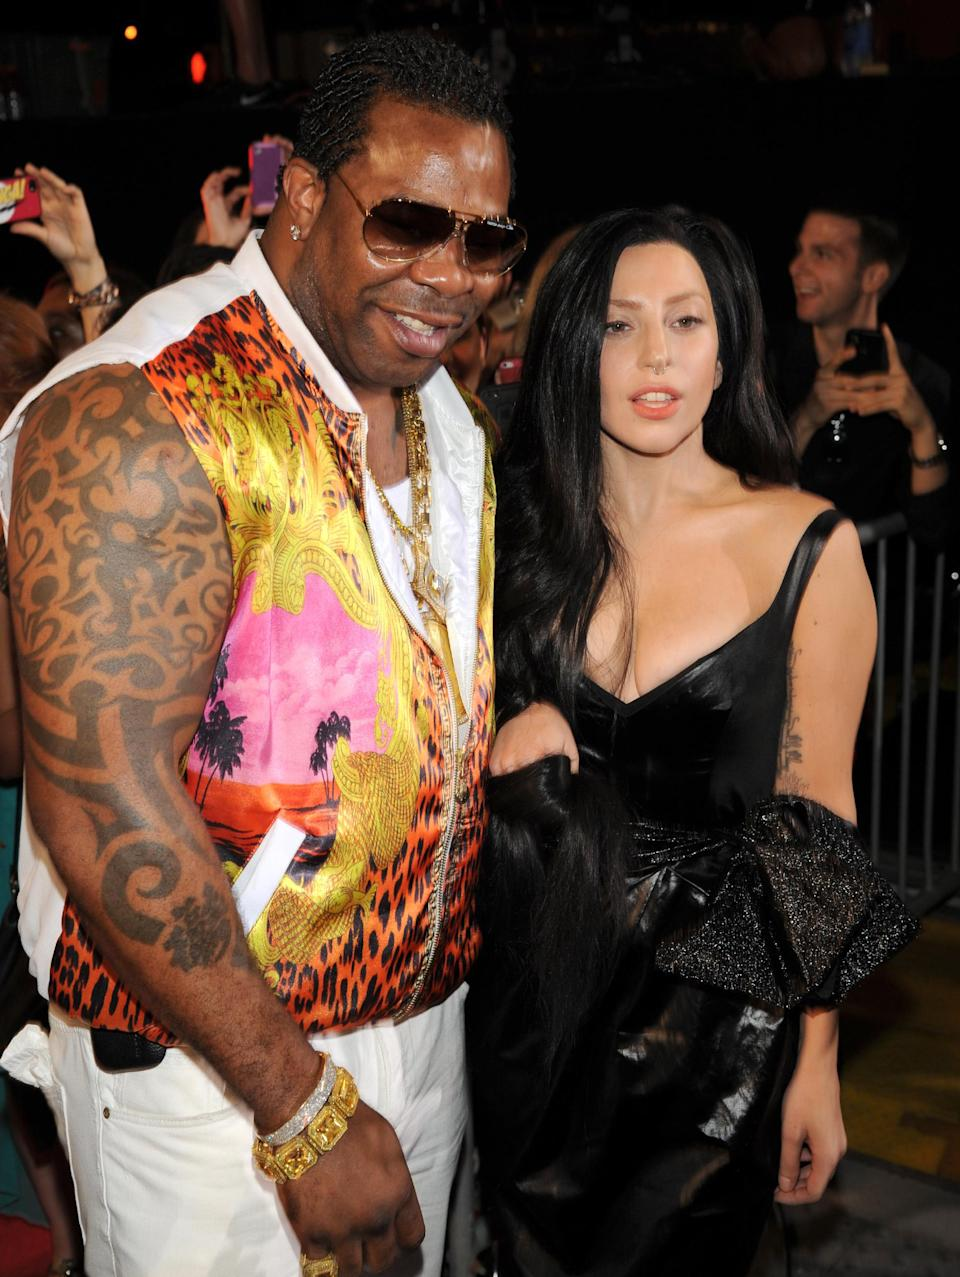 Busta Rhymes, from left, and Lady Gaga arrive at the MTV Video Music Awards on Sunday, Aug. 25, 2013, at the Barclays Center in the Brooklyn borough of New York. (Photo by Scott Gries/Invision/AP)